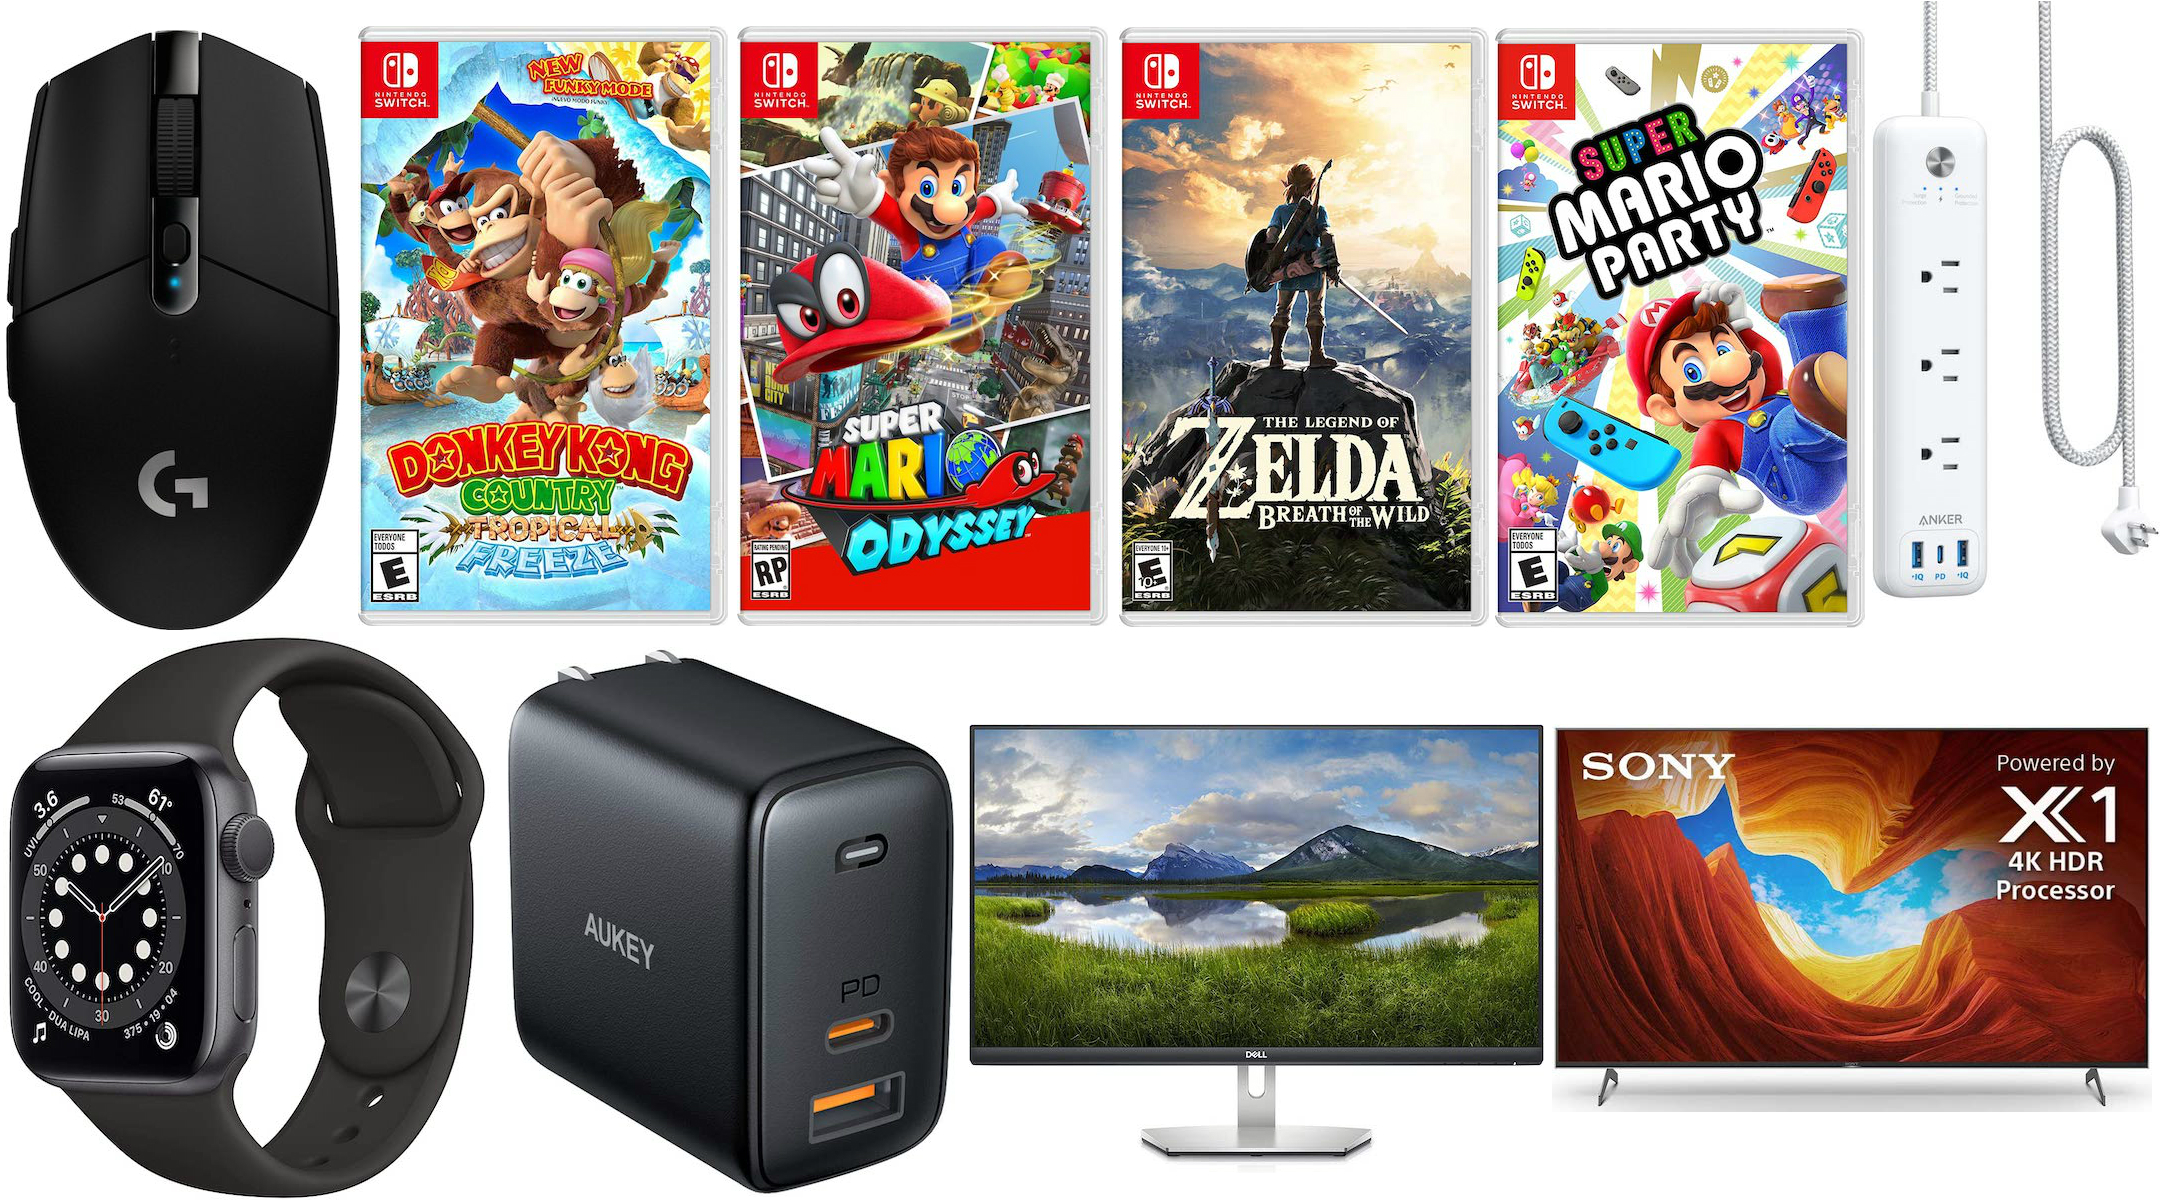 Nintendo Switch Deals Discount Mario And Zelda Games At Amazon Ars Technica